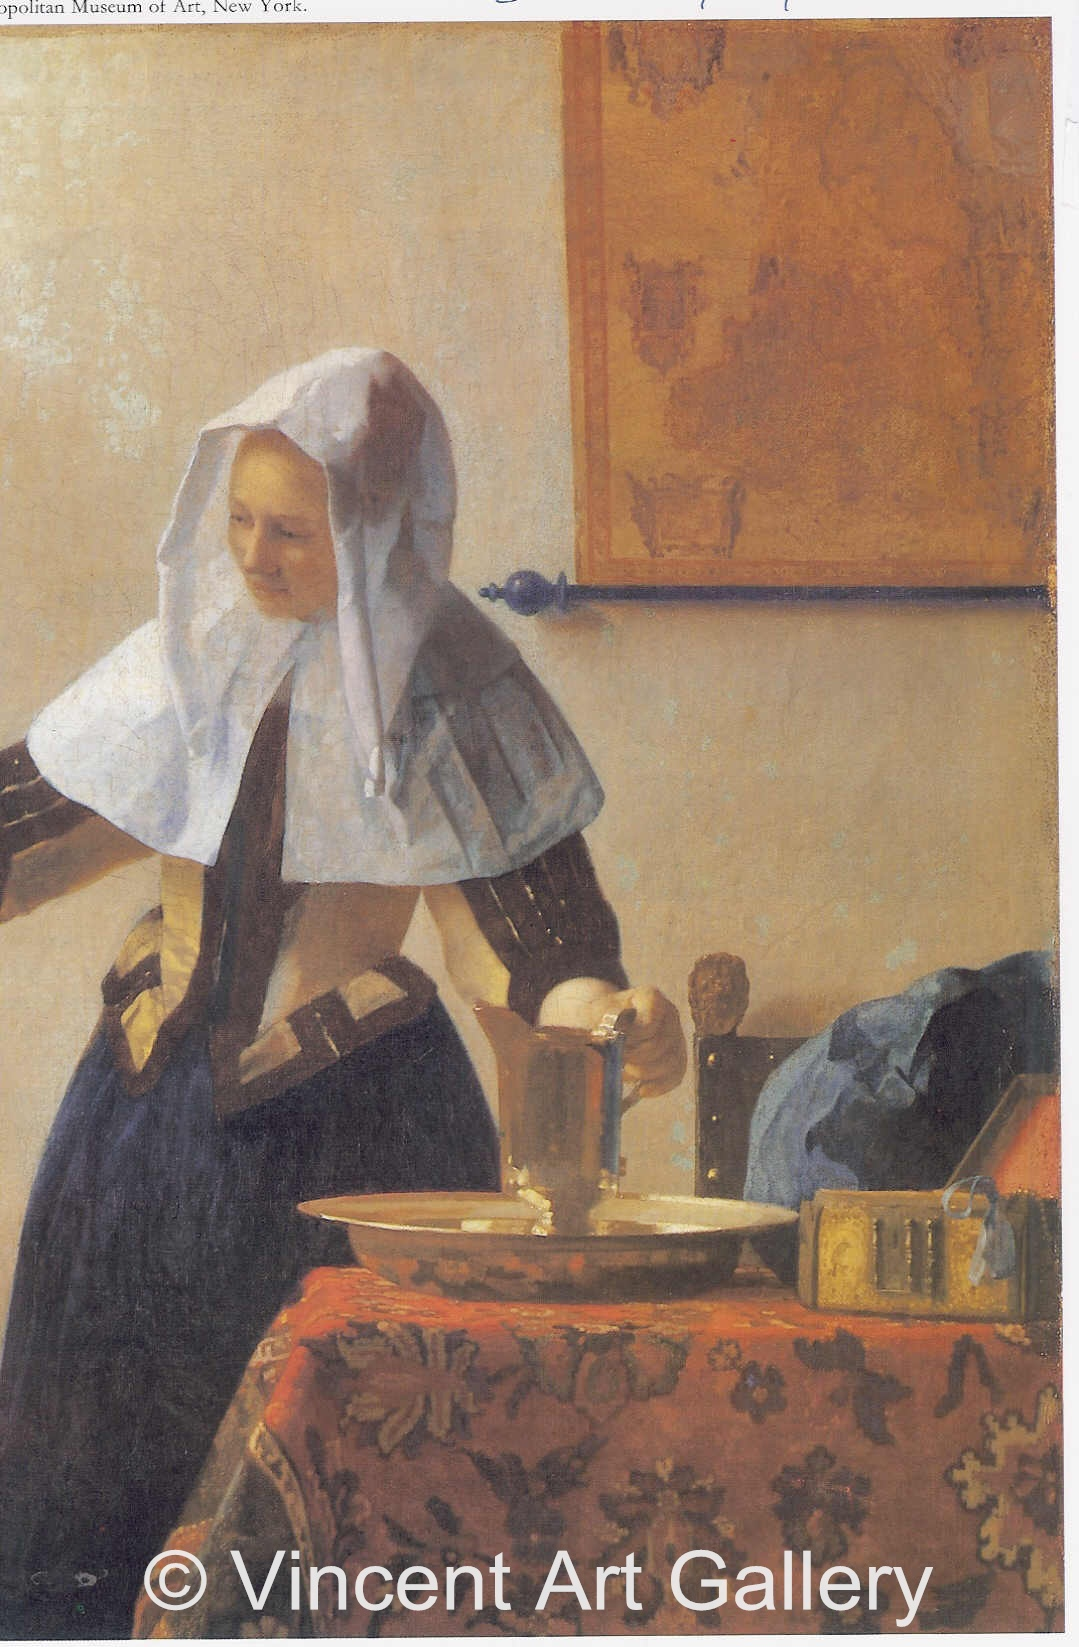 A113, VERMEER, Woman with a Water Jug, Right Part